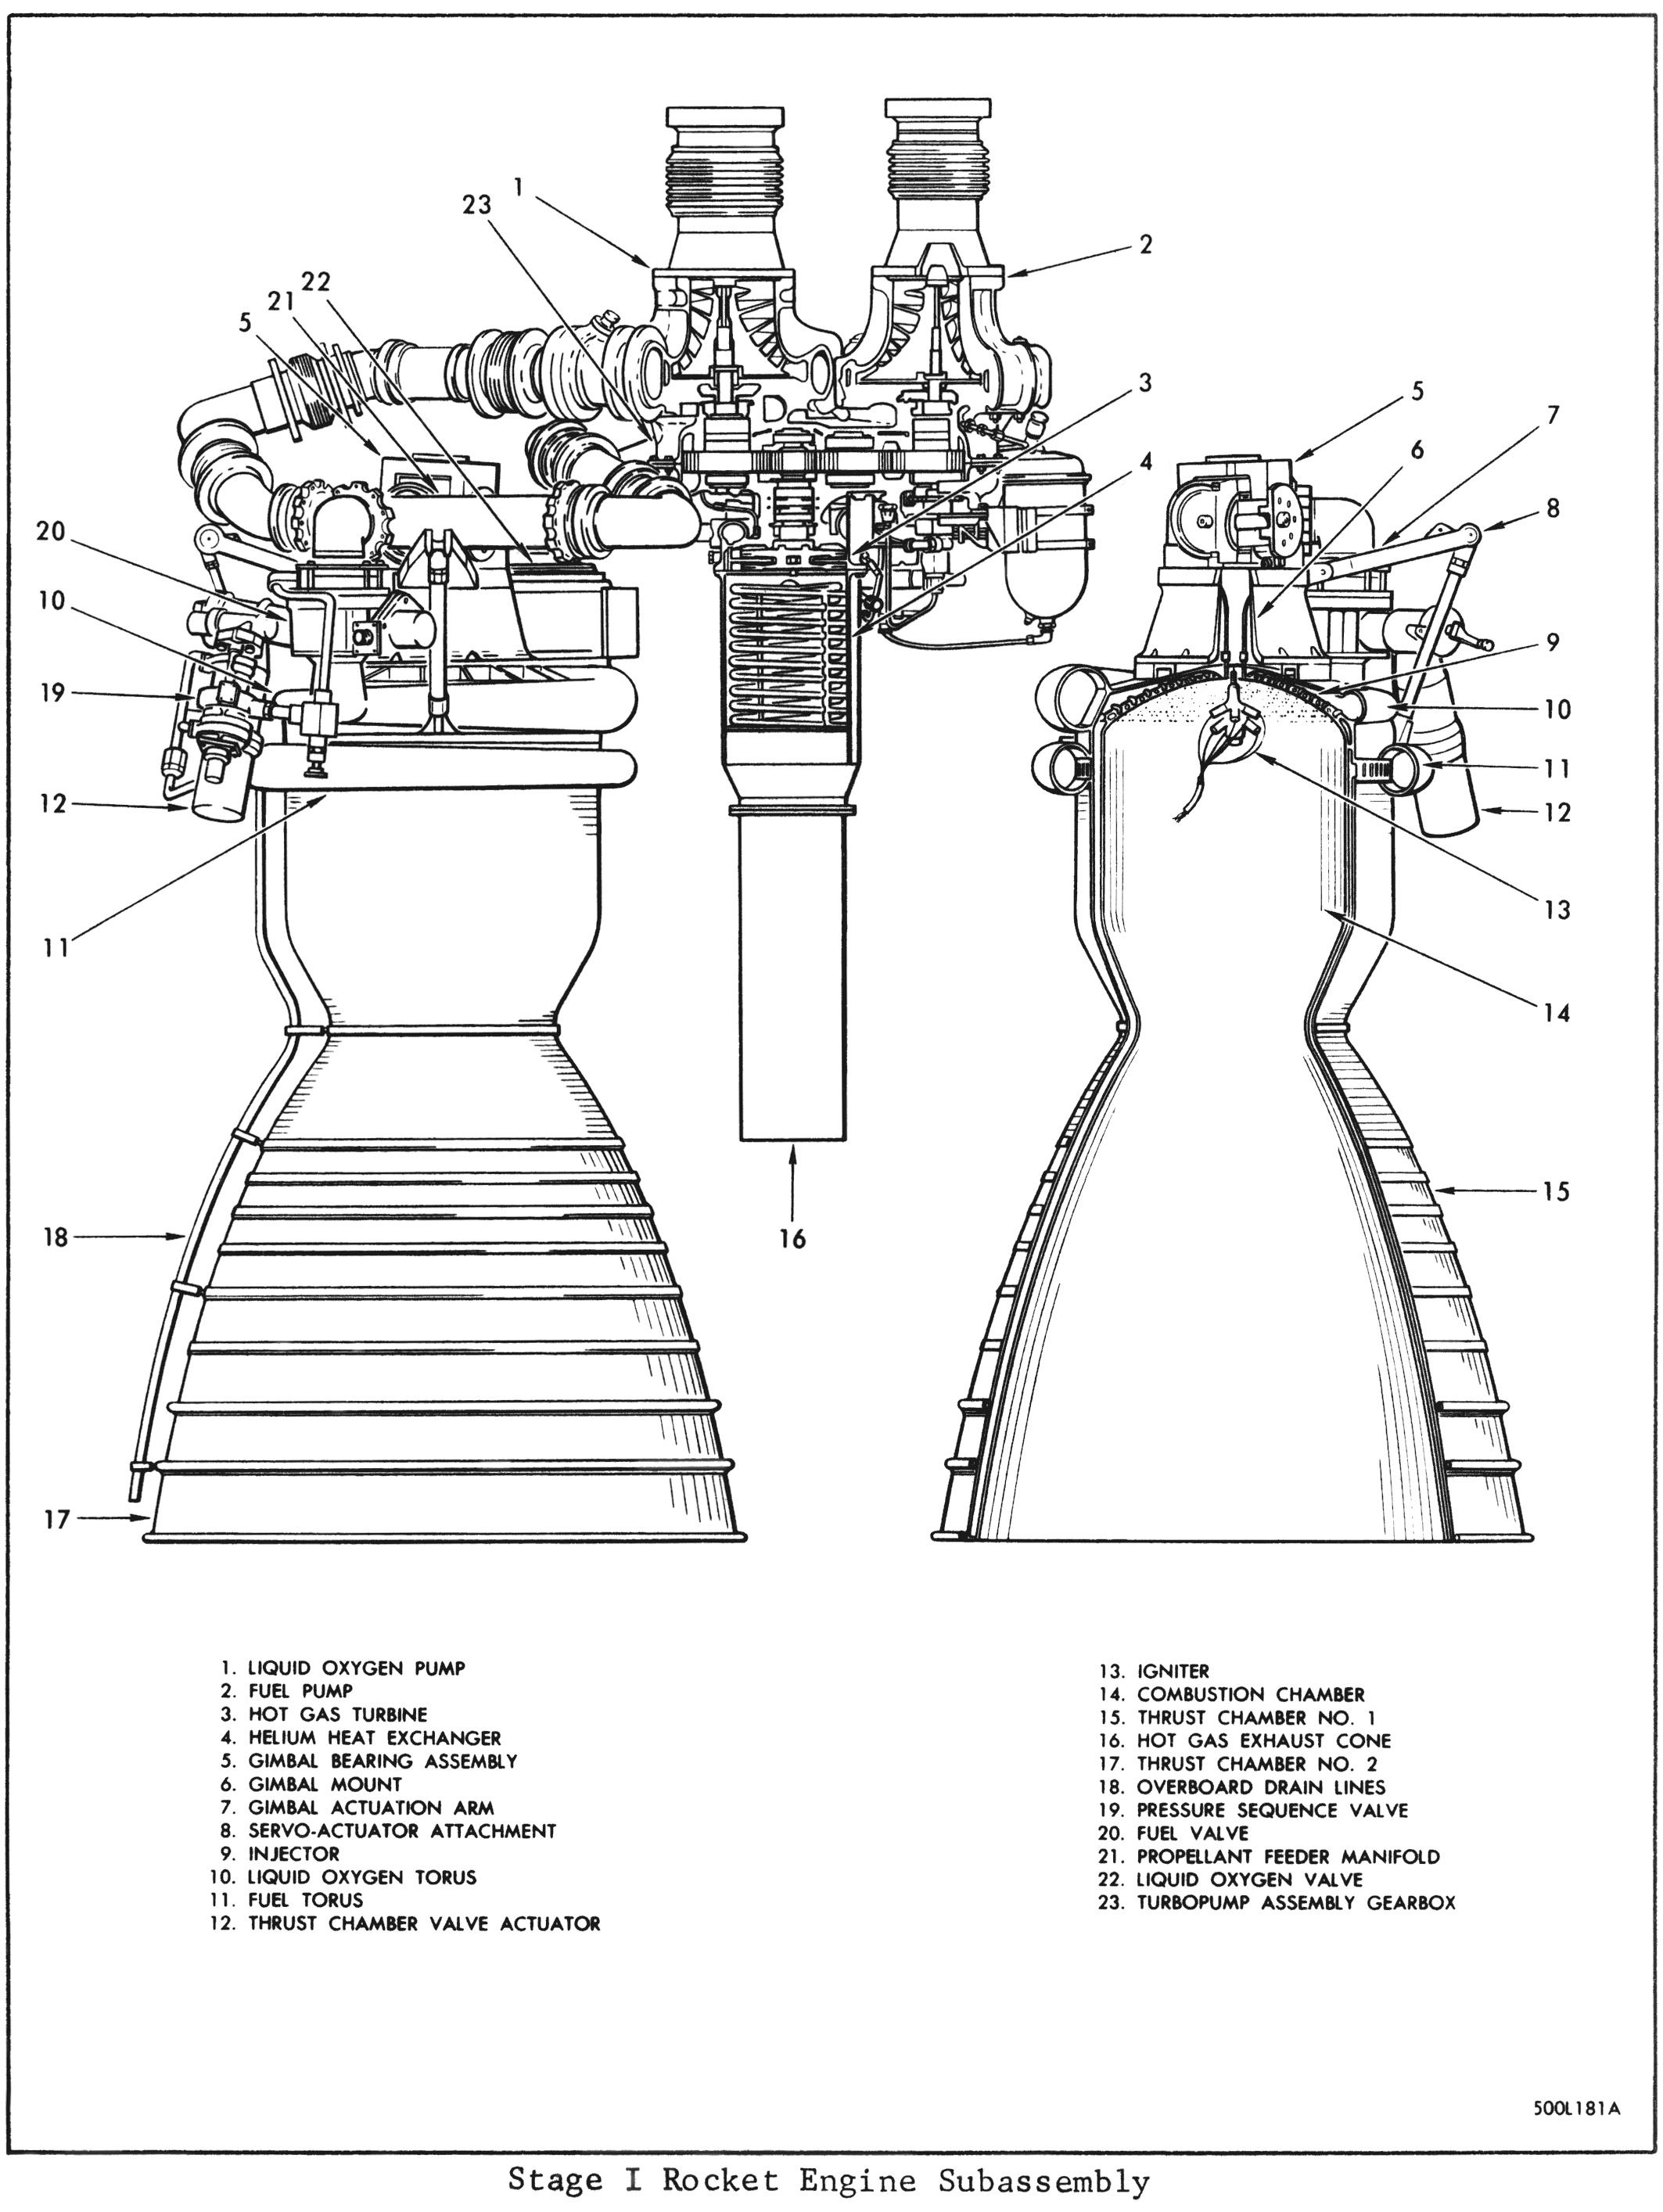 Saturn 5 Rocket Diagram Saturn 5 Rockets Cutaways